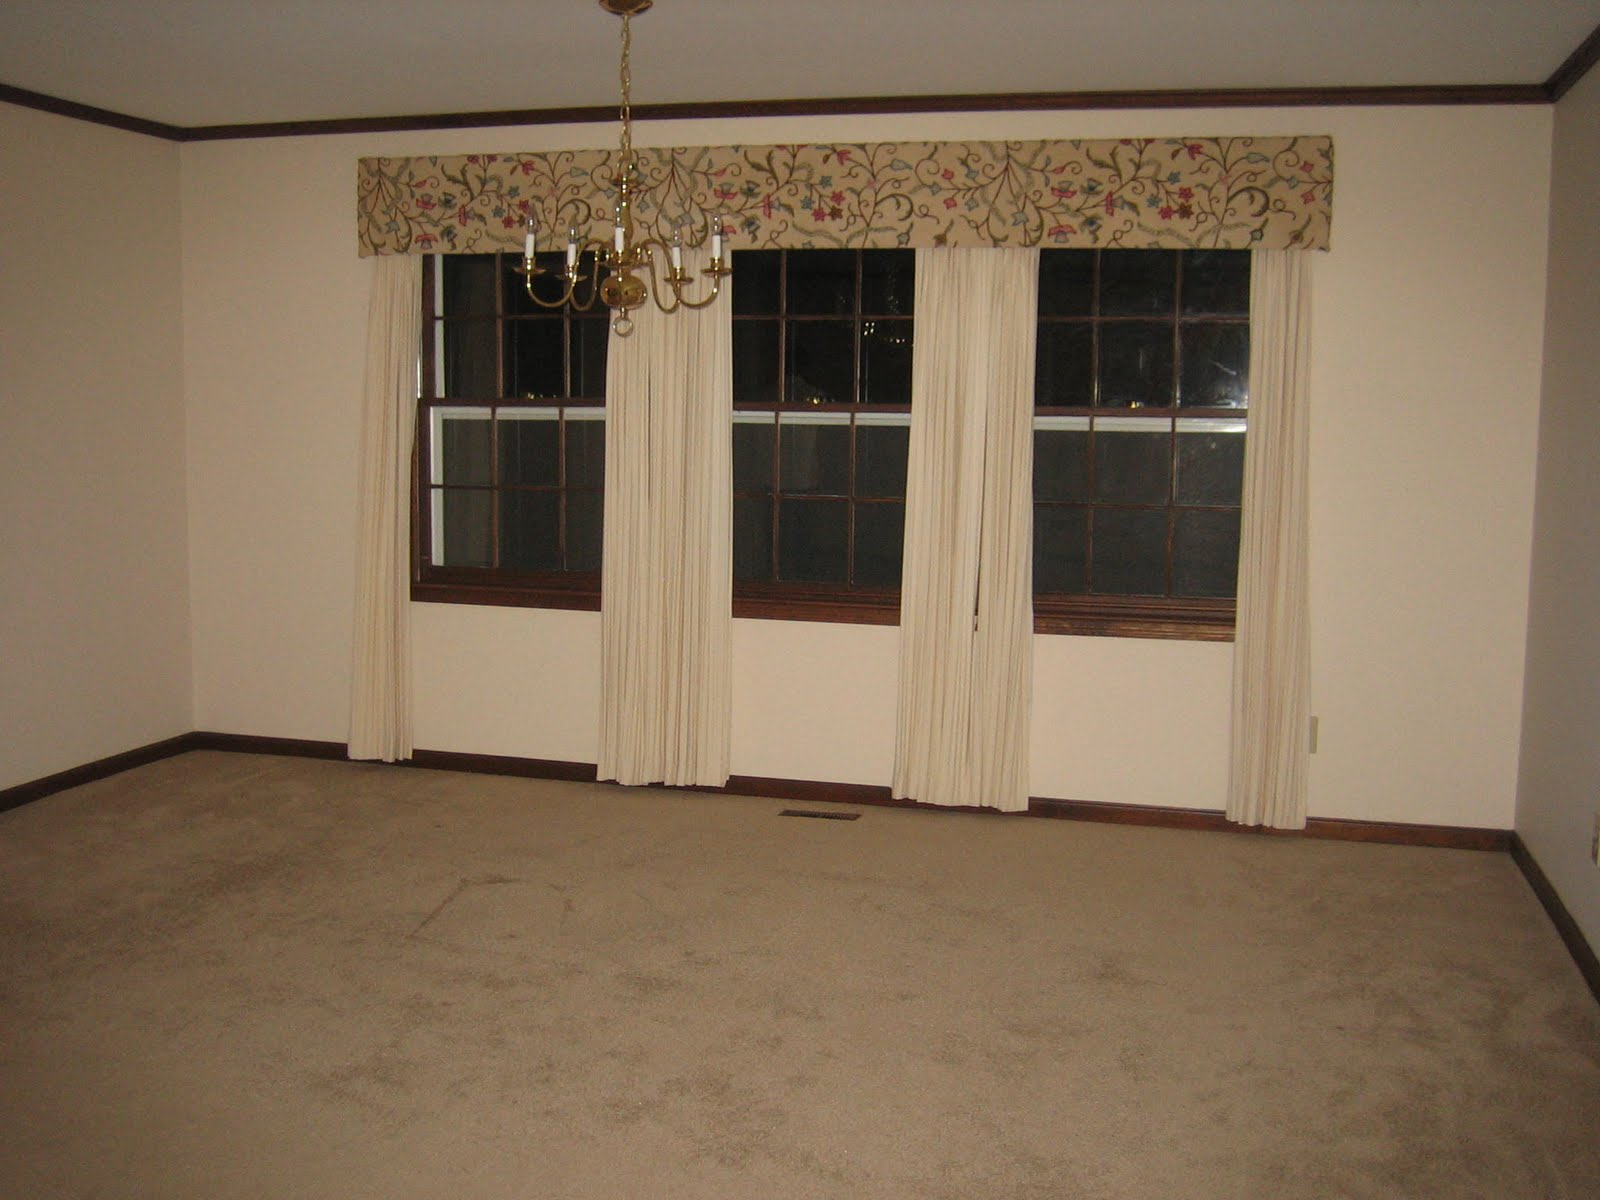 The dining room had some awesome curtains filled with cat hair.